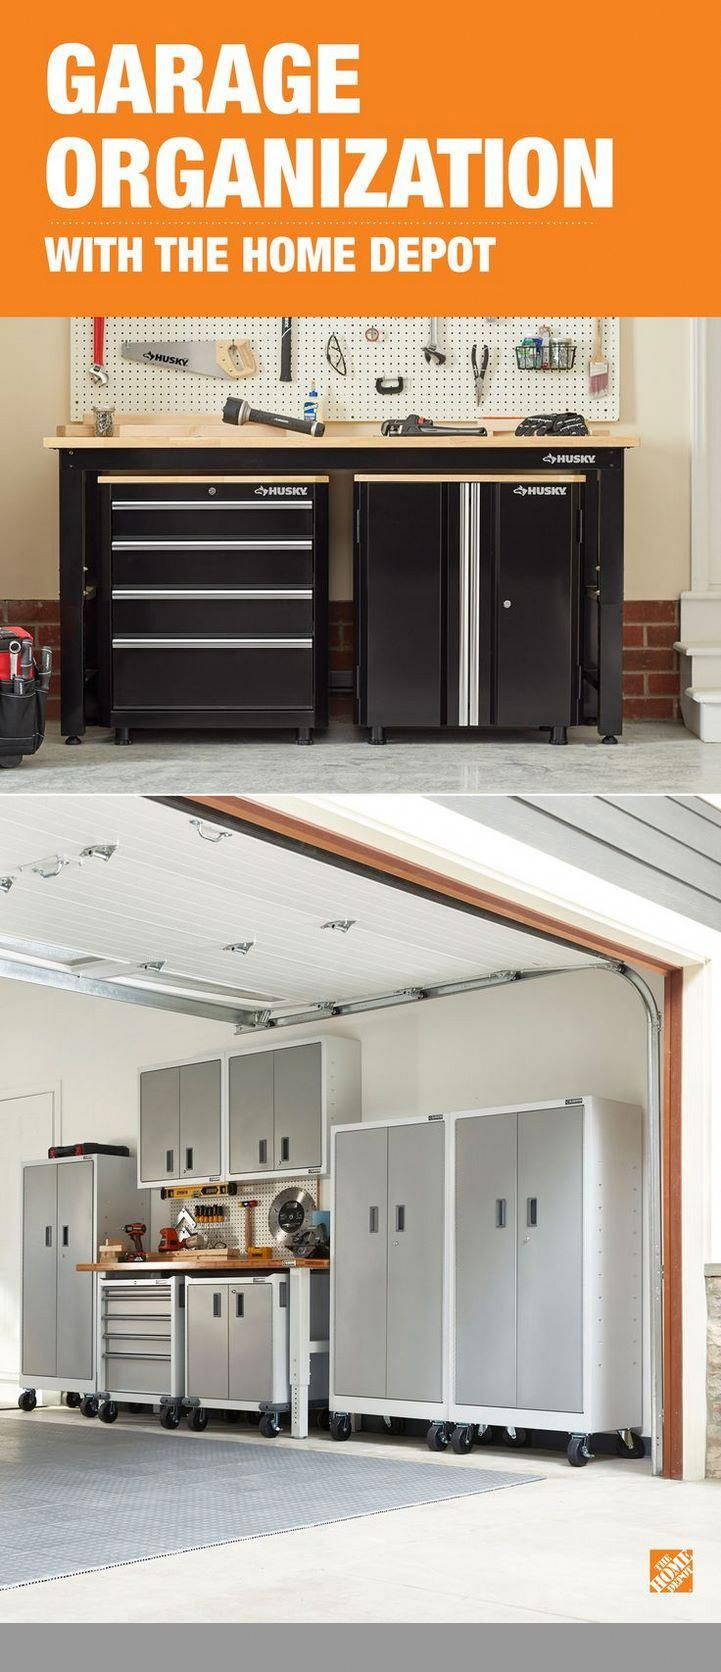 bike racks in garage wall and costco garage cabinets on sale rh in pinterest com